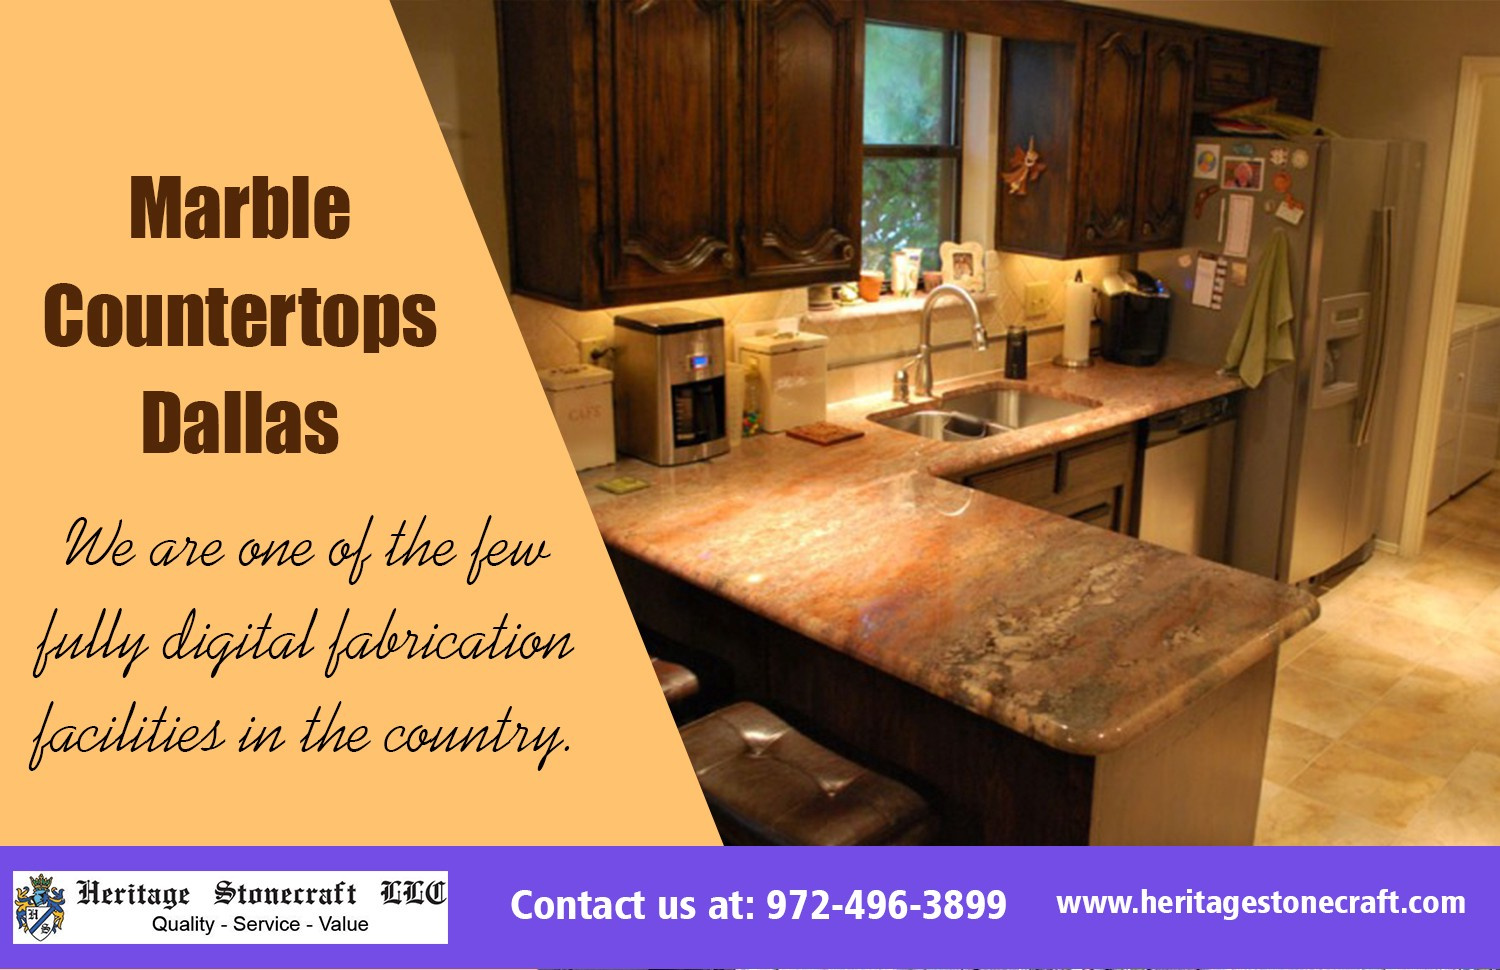 Marble Countertops Dallas Offers Beauty And Durability To Your Home At Https Heritagestonecraft Find Us On Goo Gl Maps Rz6cl2txtuv